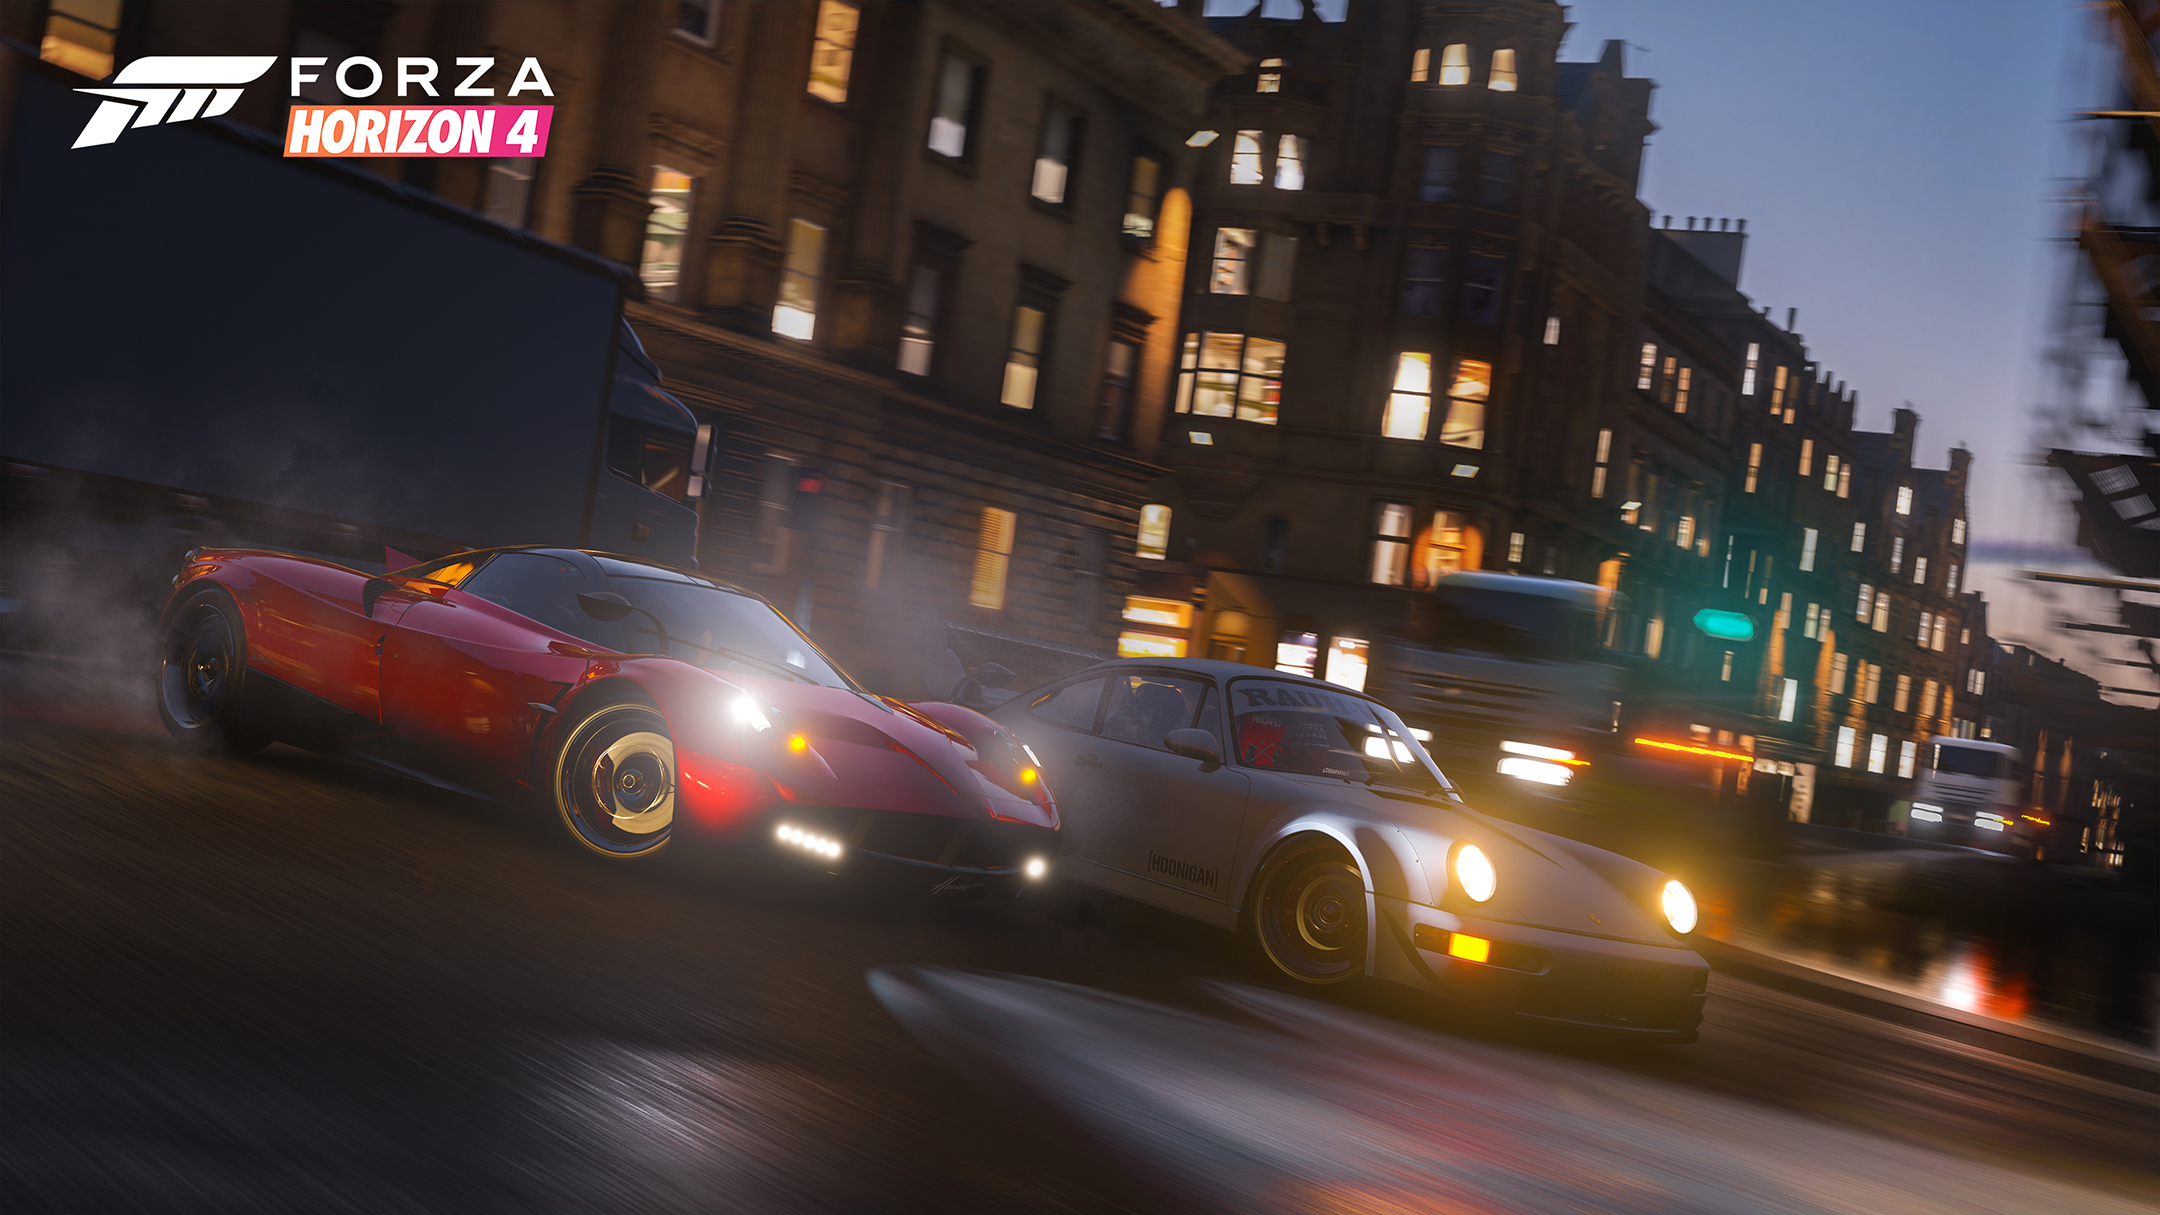 Forza Horizon 4 - 2018 - screen cars - Pagani vs Porsche - night drift